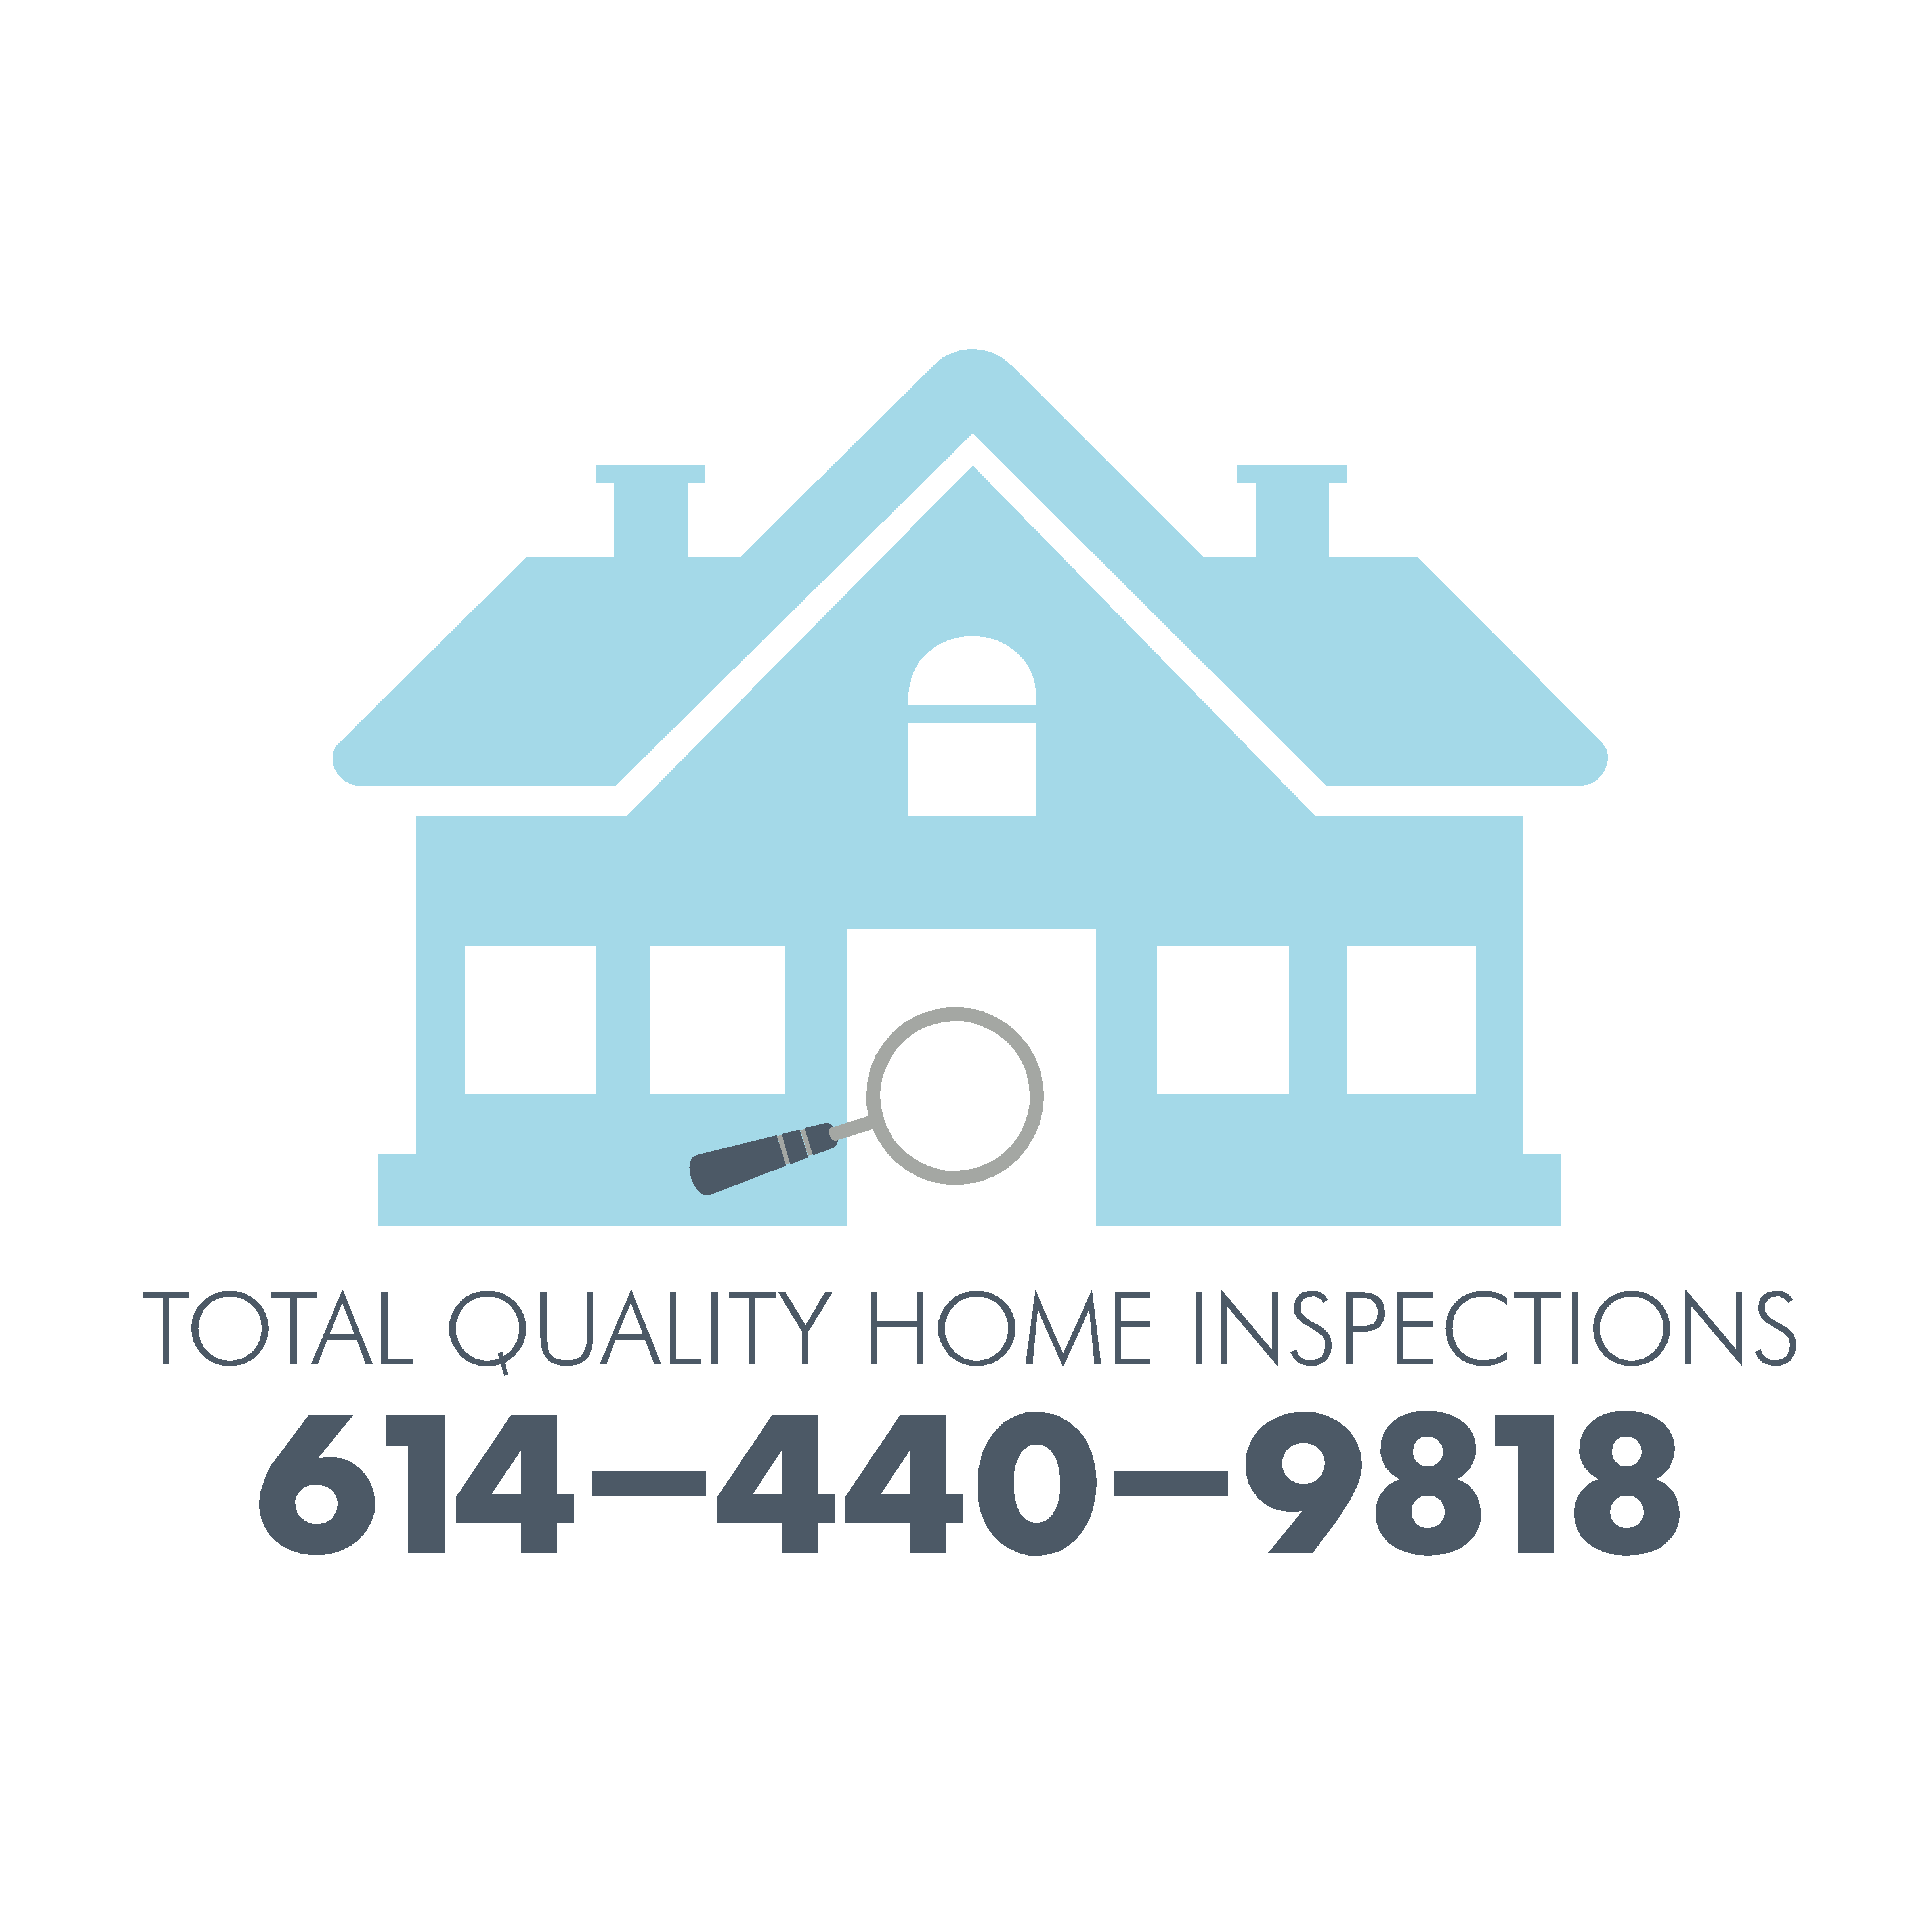 Total Quality Home Inspections